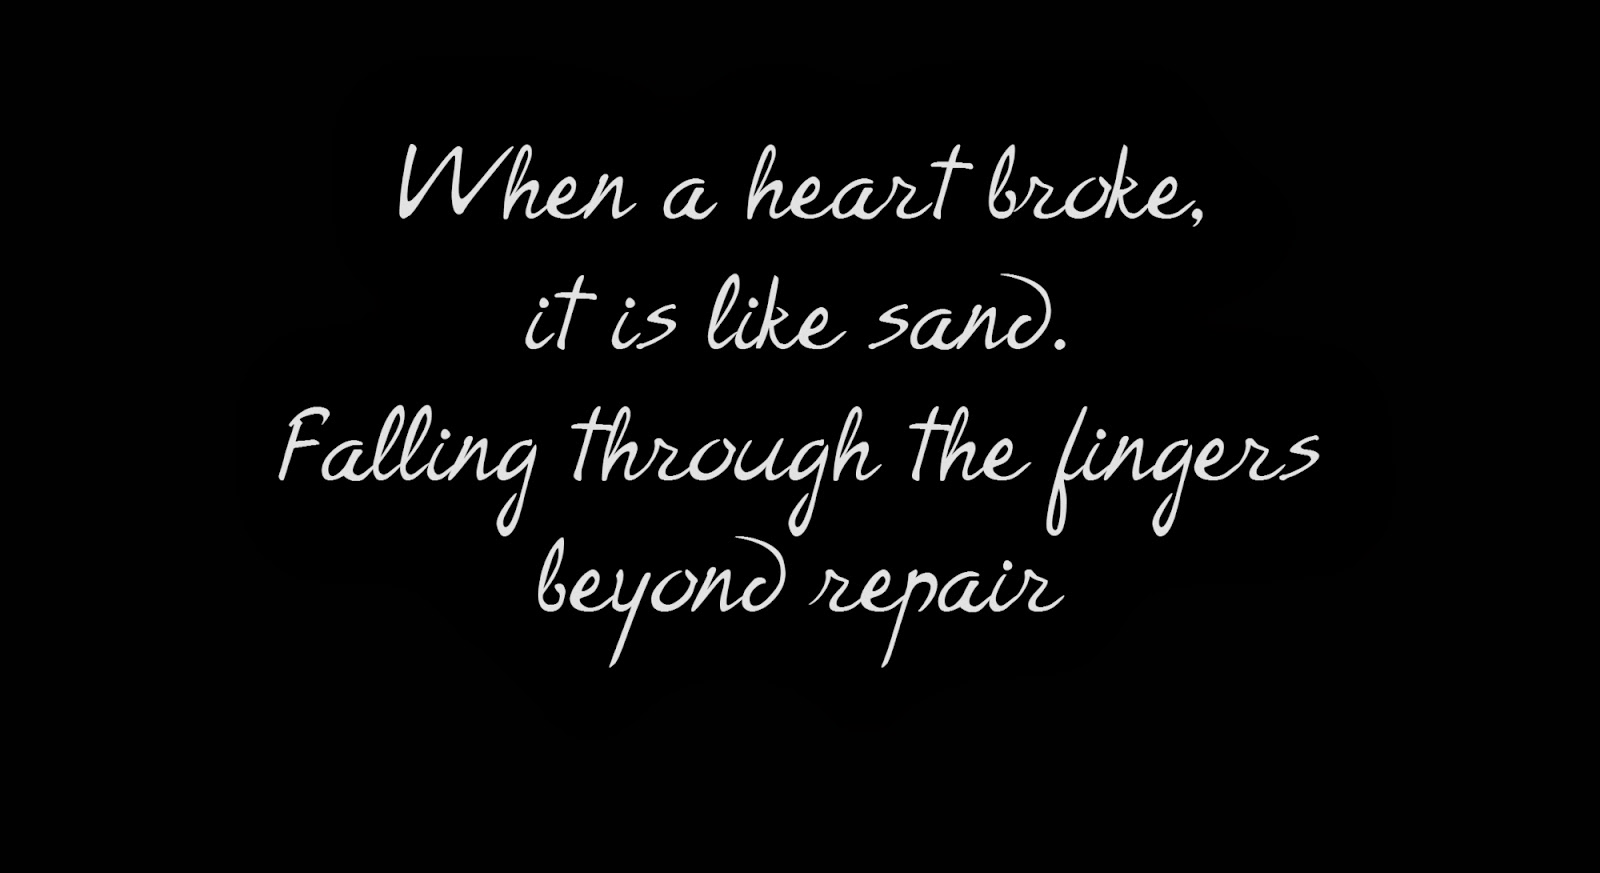 When a heart broke, it is like sand.  Falling through the fingers beyond repair